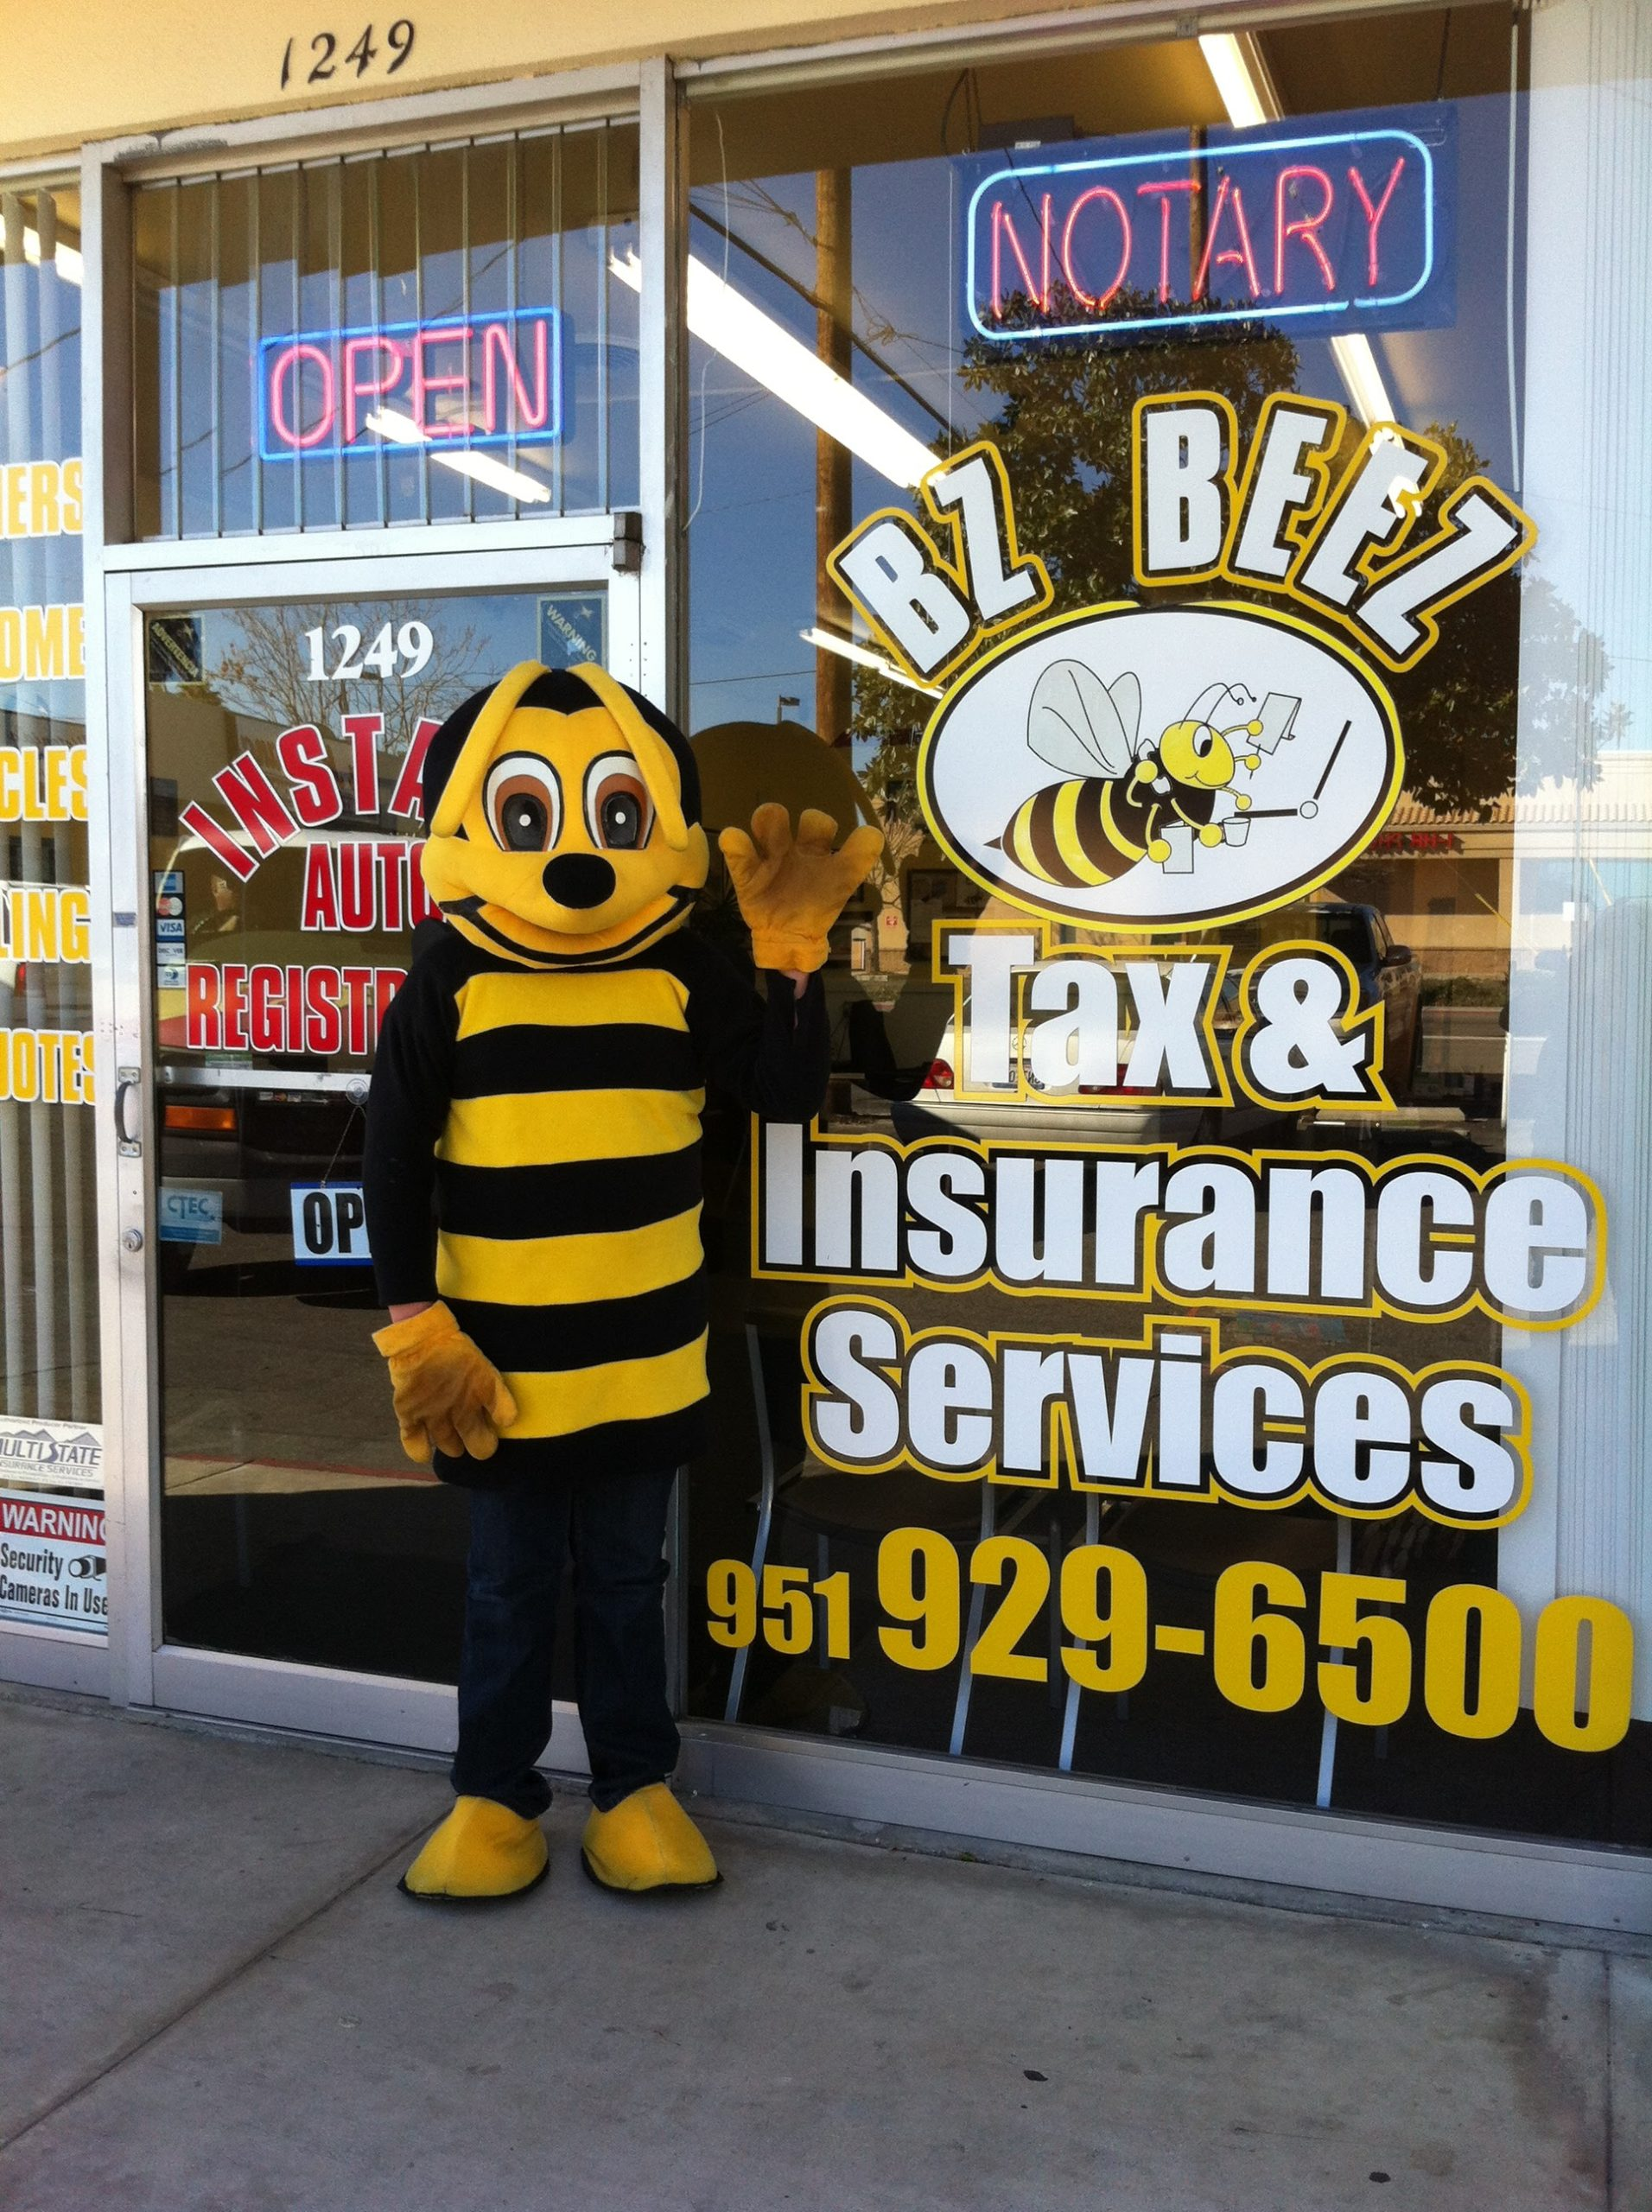 About BZ Beez Tax & Insurance Services